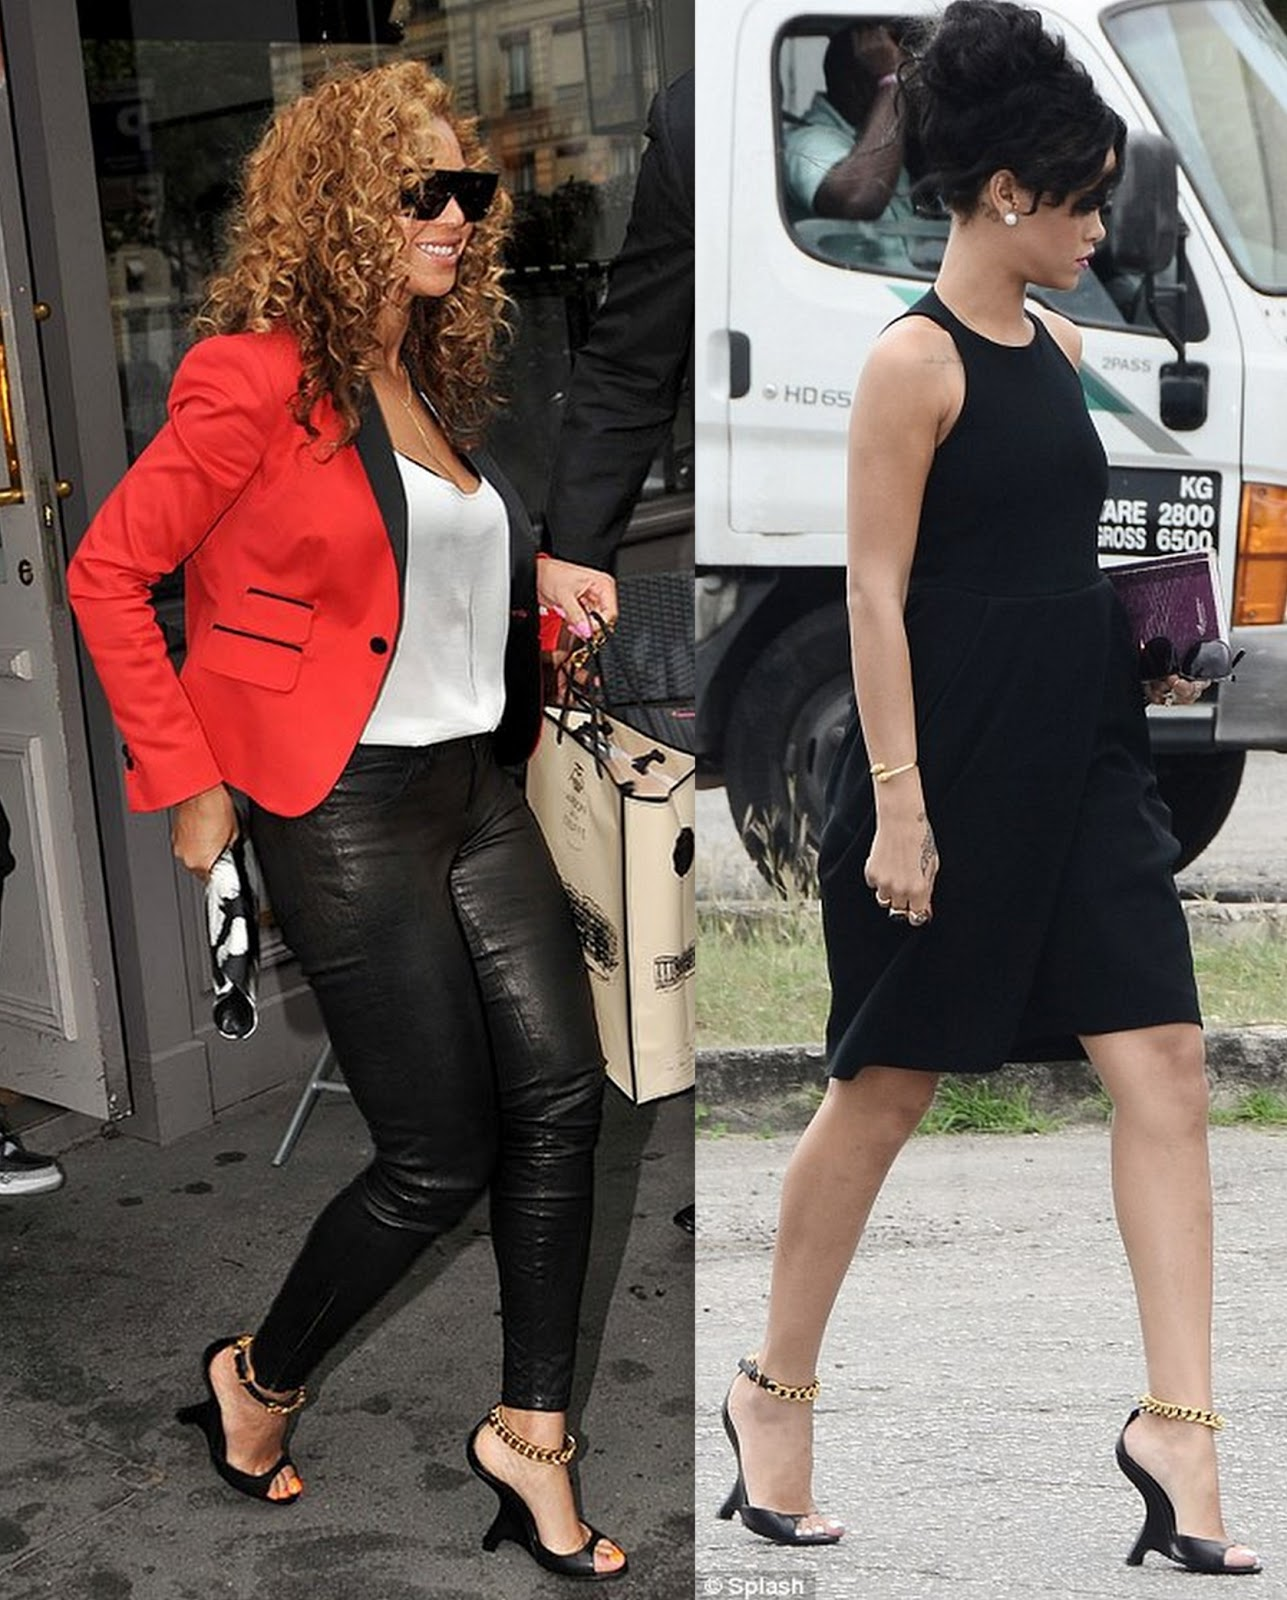 http://2.bp.blogspot.com/-JxhnJsPCqJc/UJbE8vJBEYI/AAAAAAAABxI/_X943CbxEX0/s1600/Rihanna-funeral-tom-ford-chain-wedge-Beyonce-Knowles.jpg